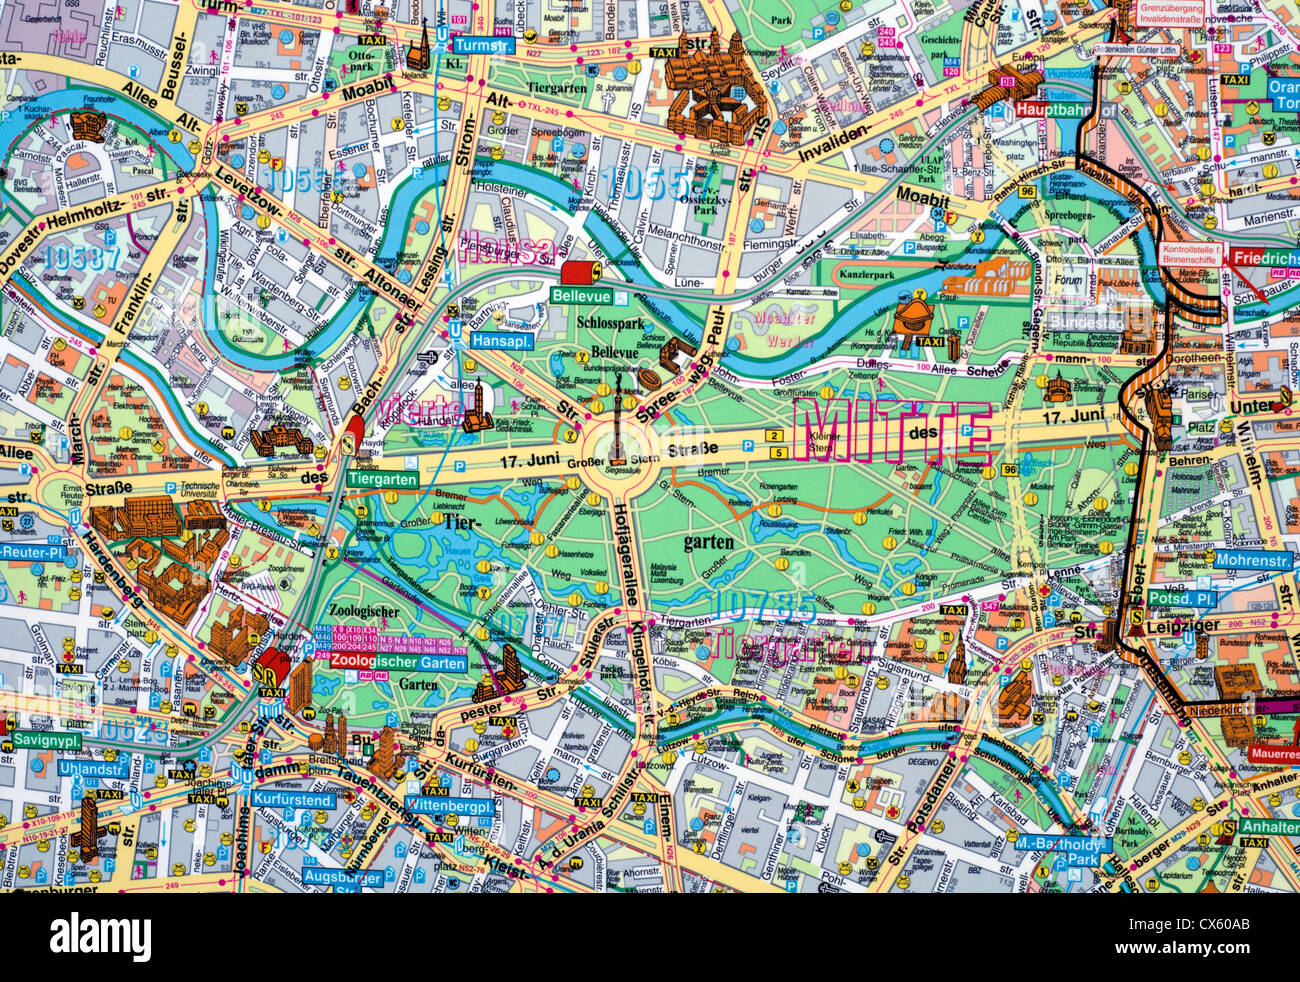 Close up of a map of Berlin city centre, Germany Stock Photo ...